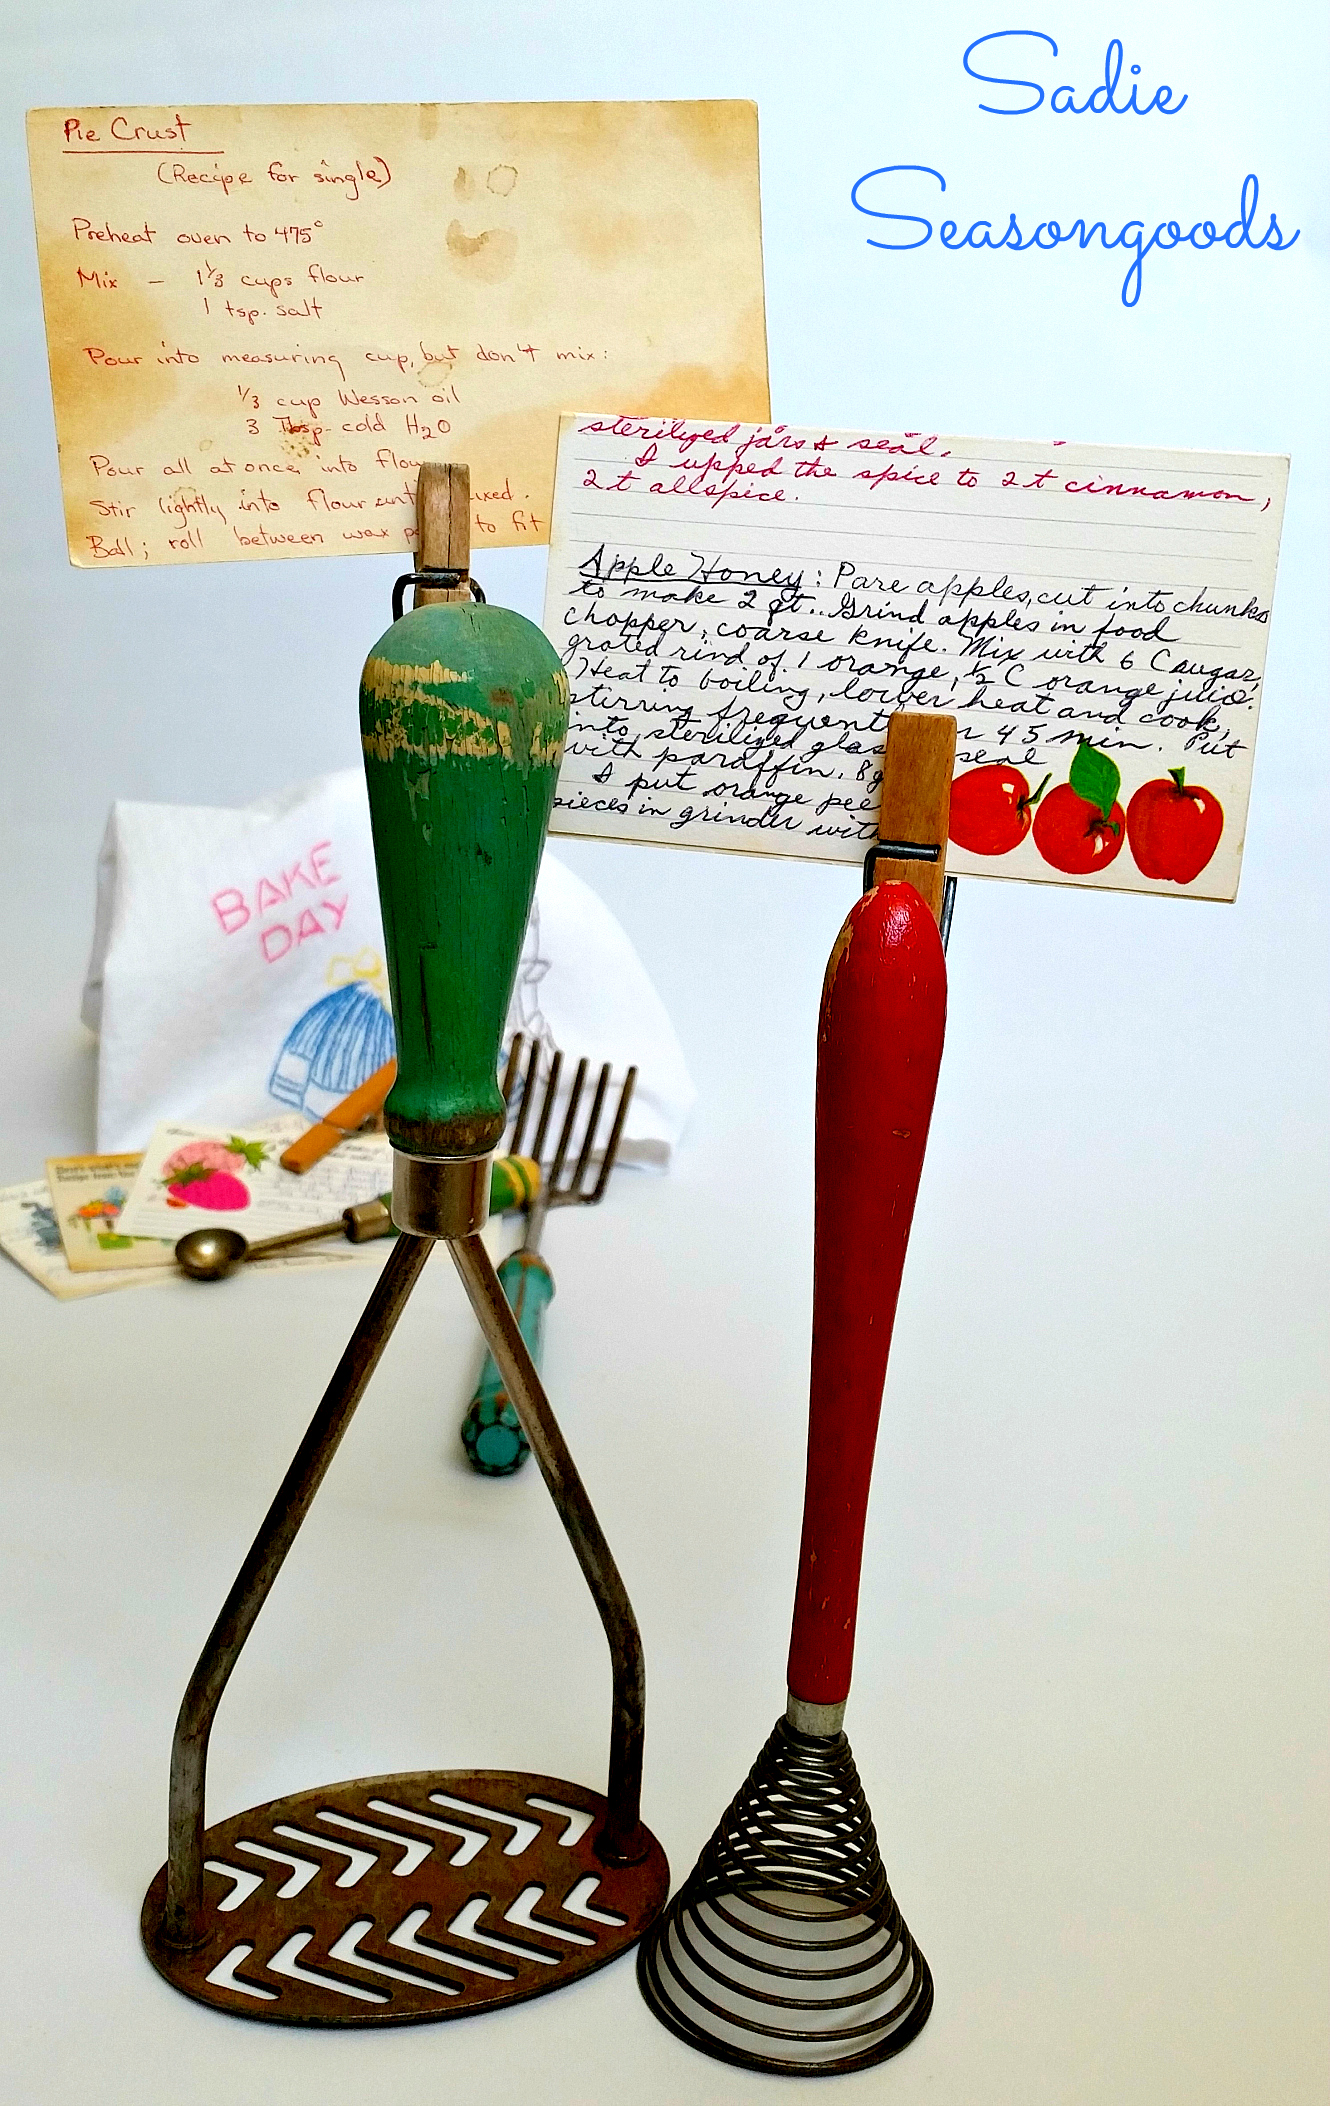 Vintage Cooking Clips- Recipe Card Holders by Sadie Seasongoods, featured on Funky Junk Interiors